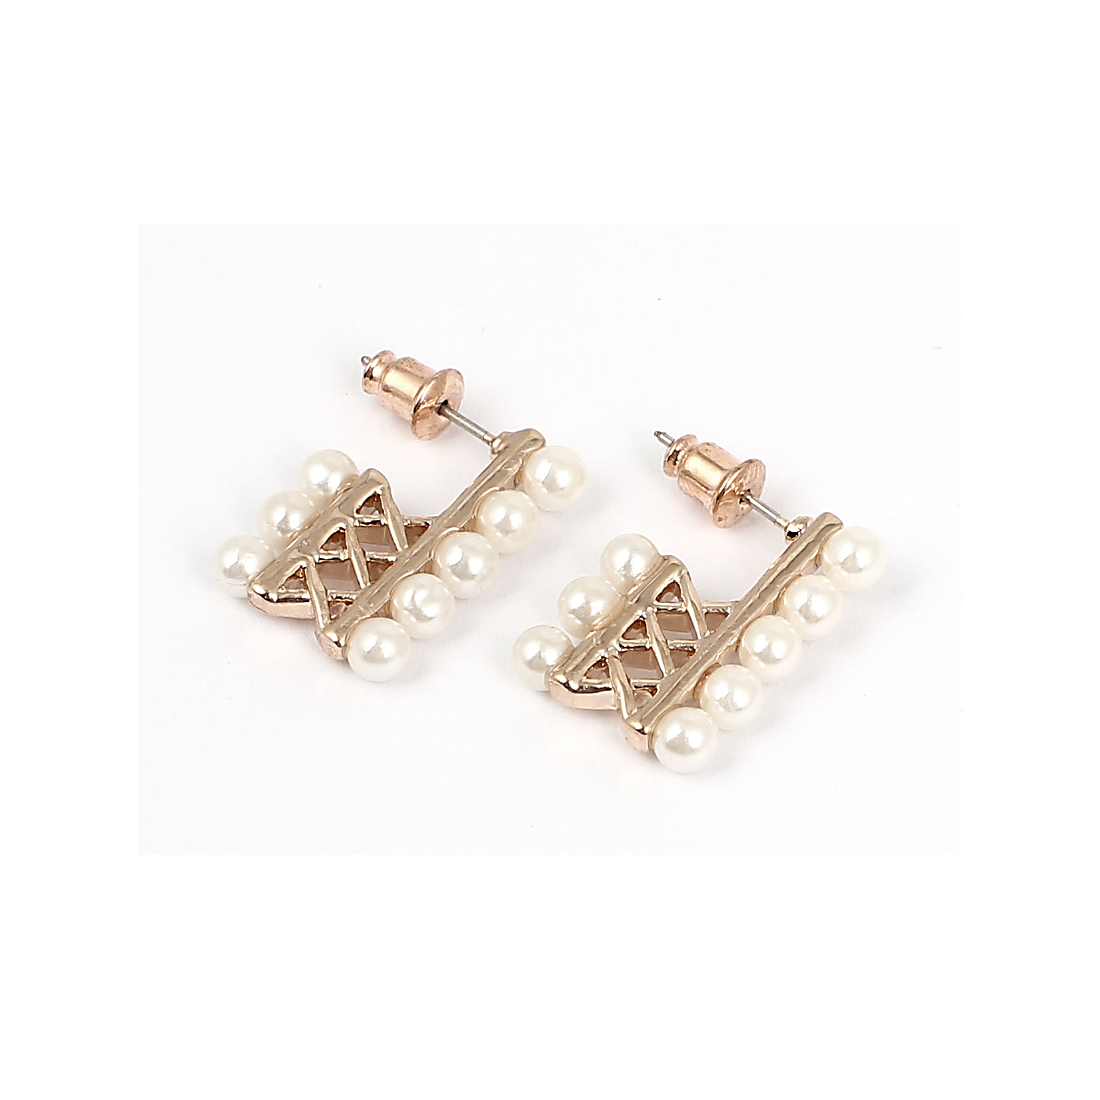 Women White Faux Pearl Inlaid Hollow Out Metal Stud Earrings Ear Pins Nails Gold Tone Pair